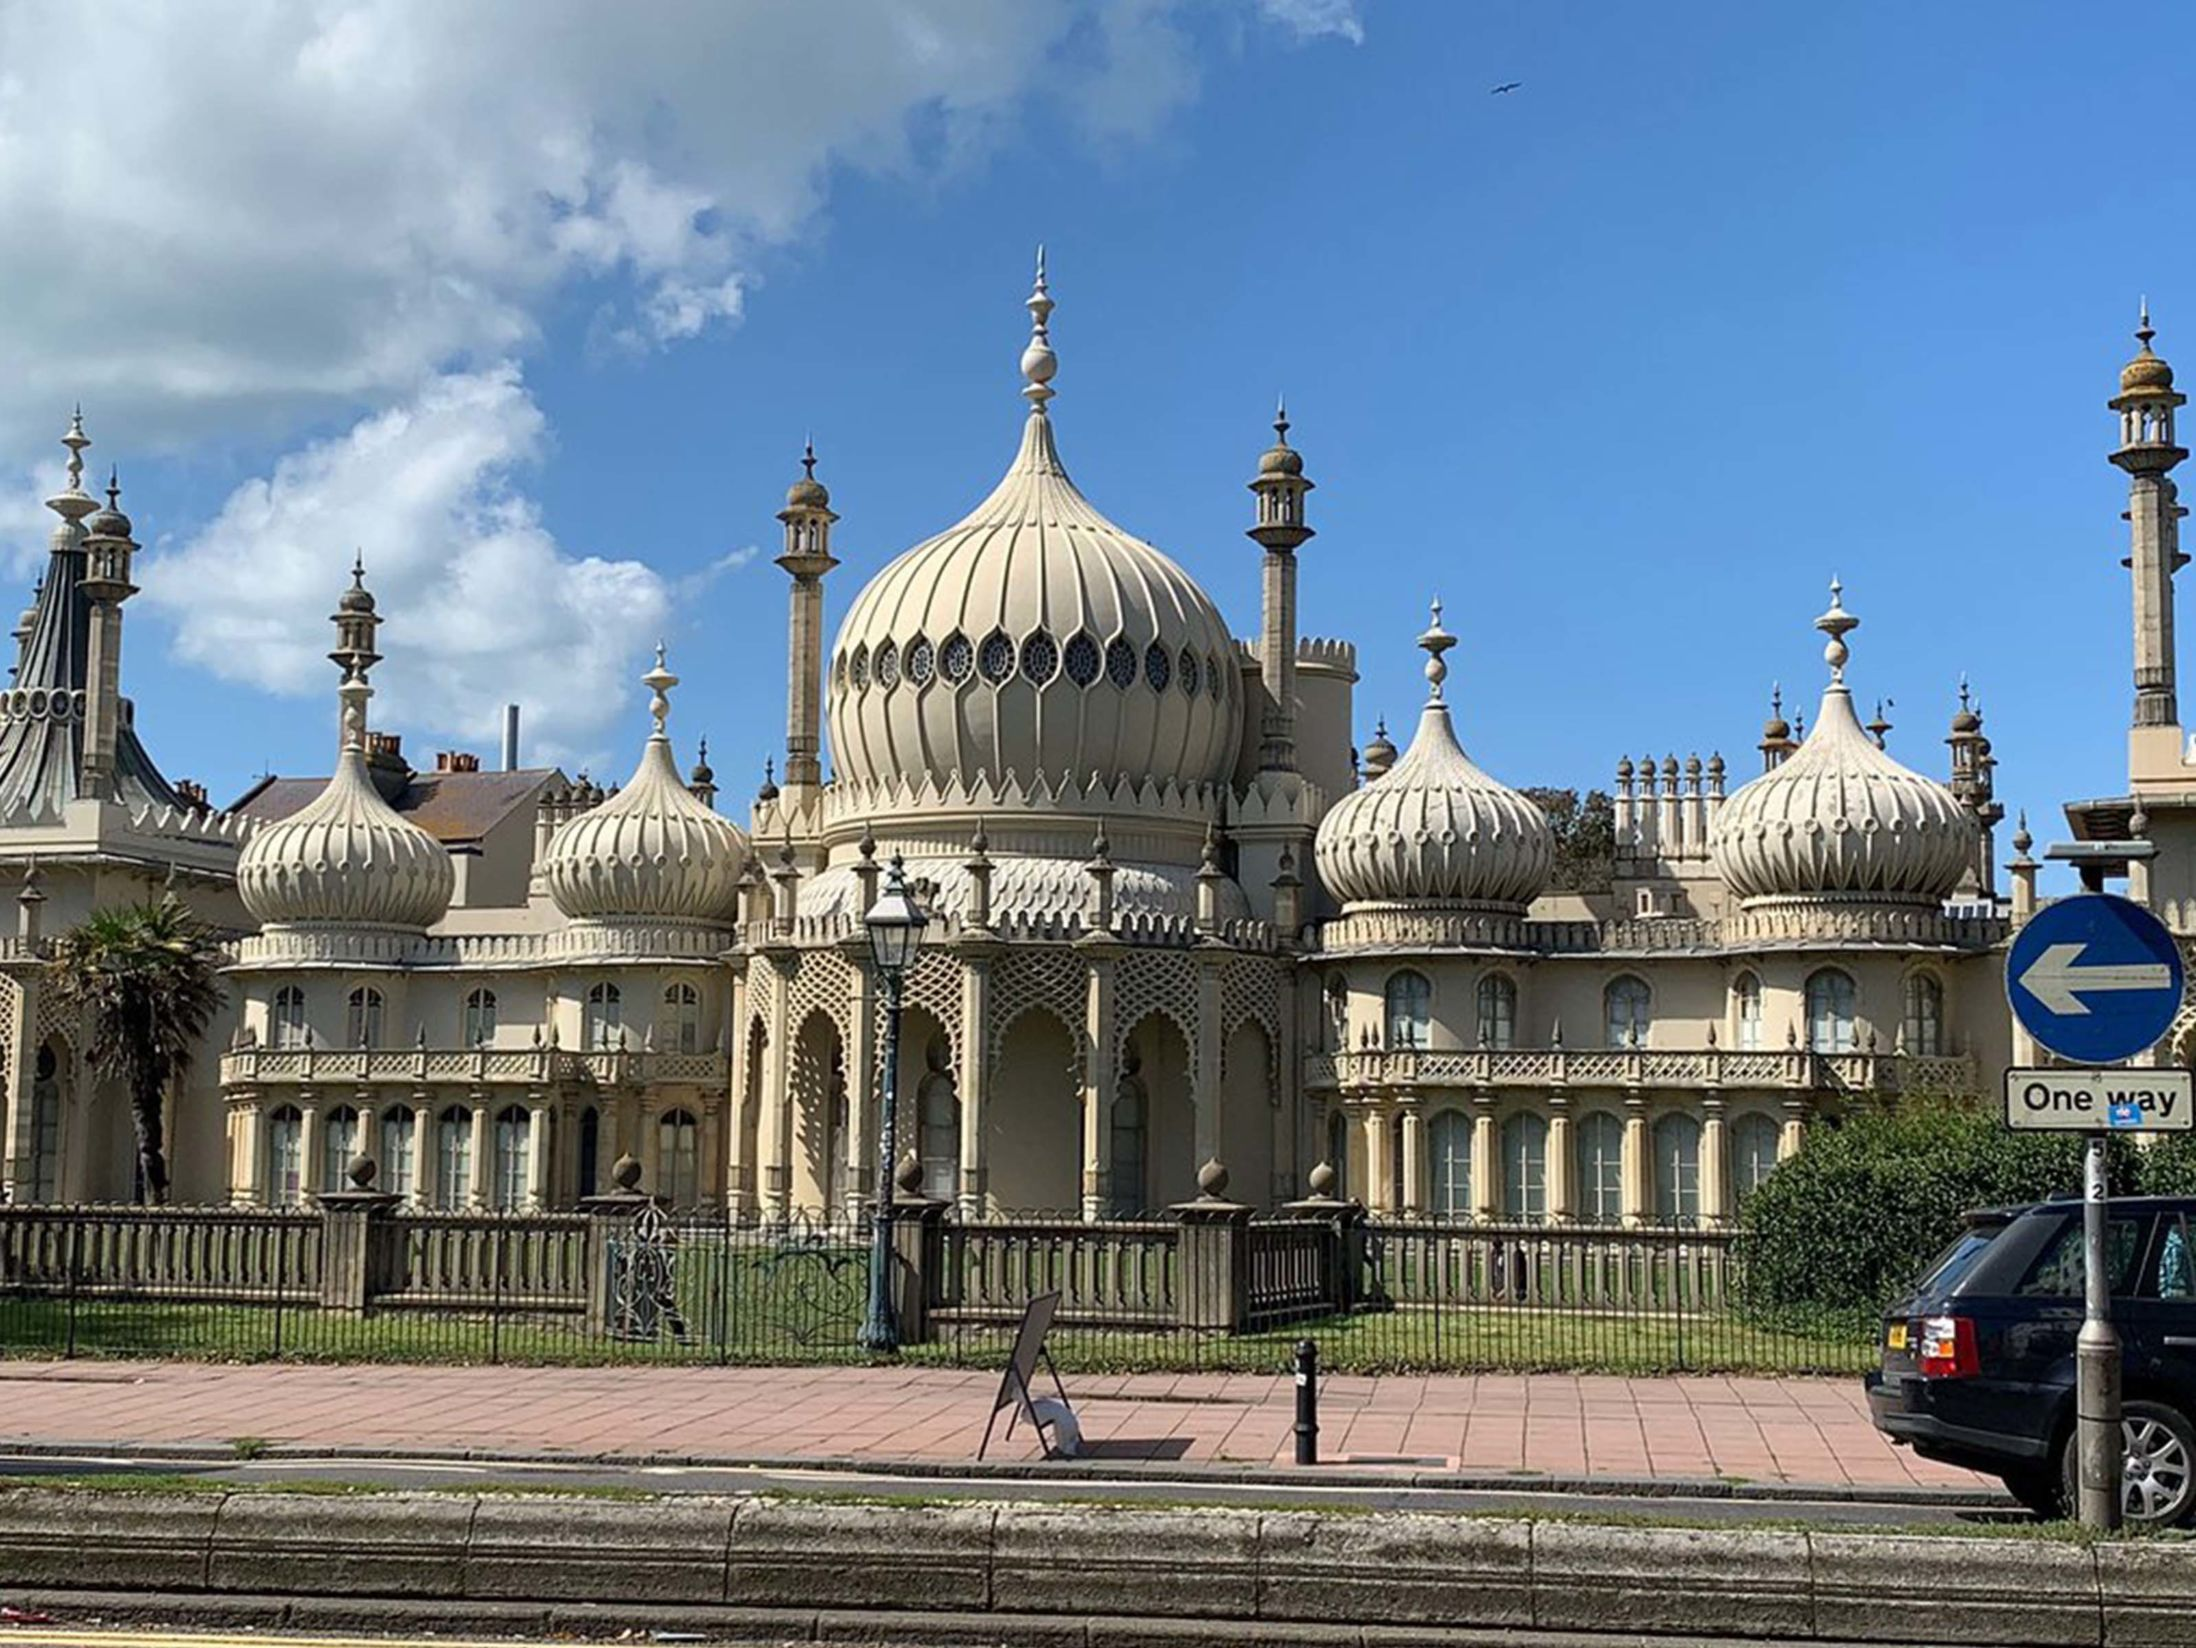 Things To Do in Brighton - Royal Pavilion